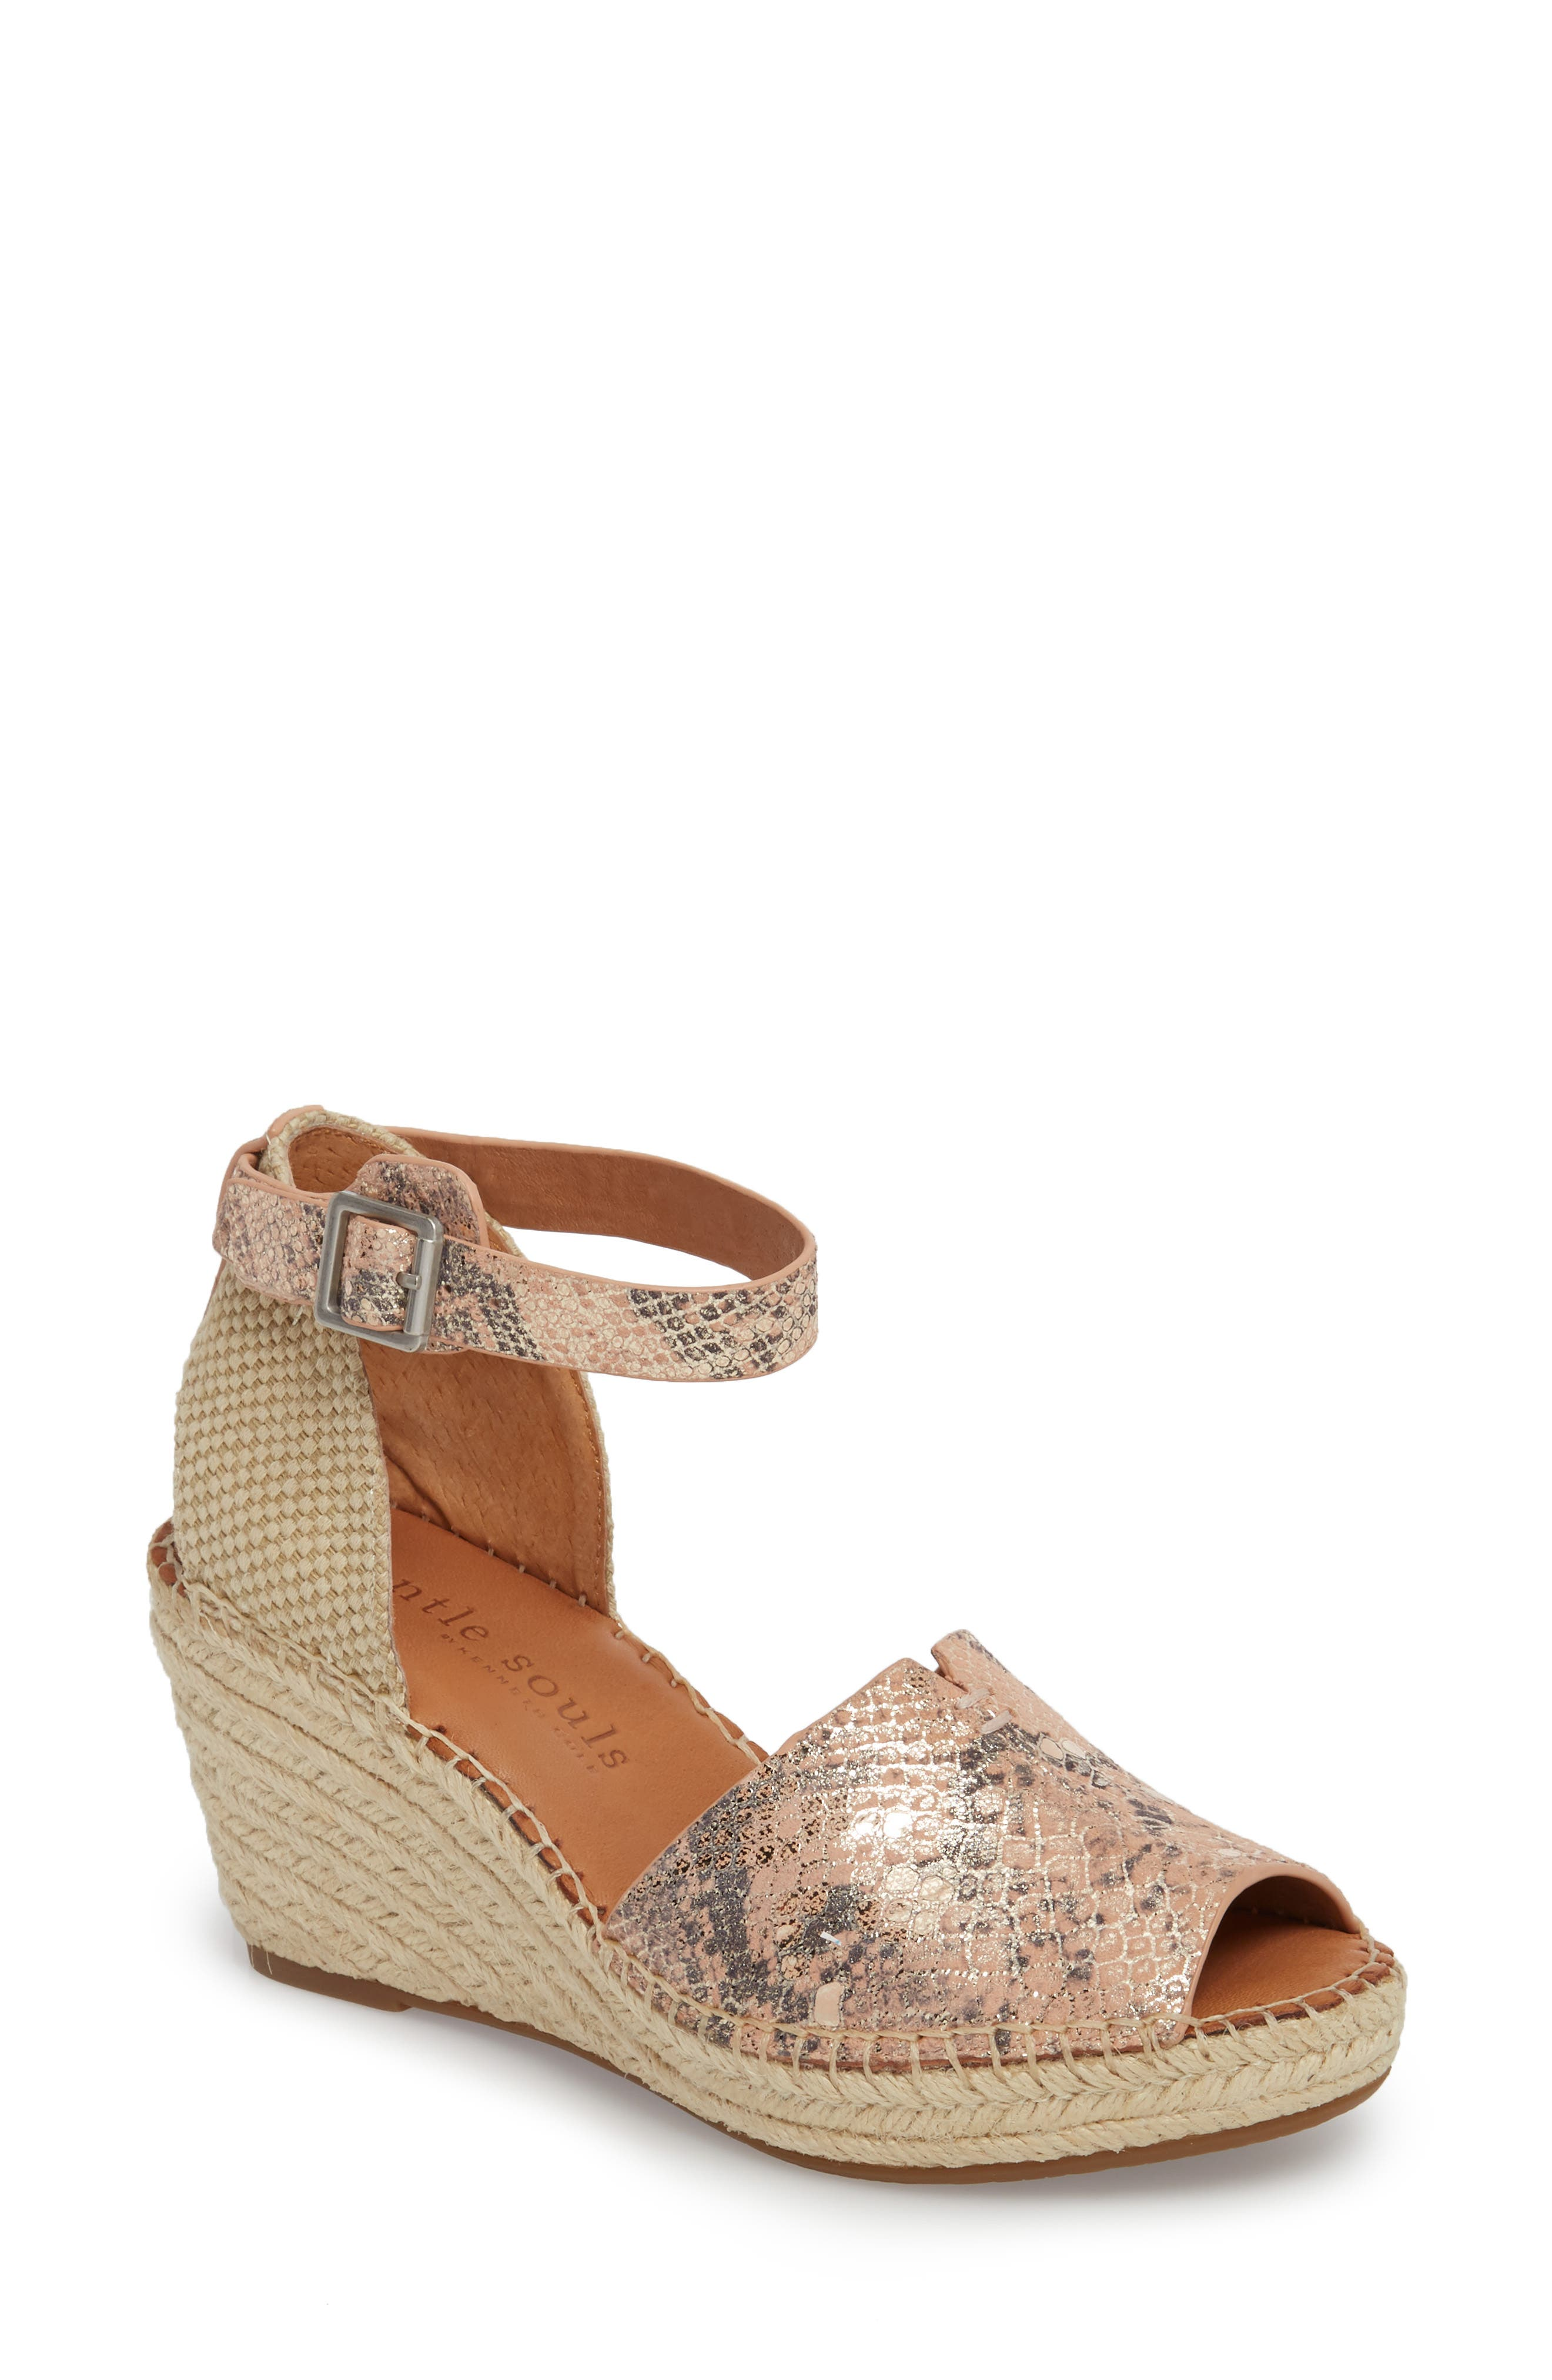 GENTLE SOULS BY KENNETH COLE, Charli Espadrille Wedge, Main thumbnail 1, color, ROSE METALLIC LEATHER